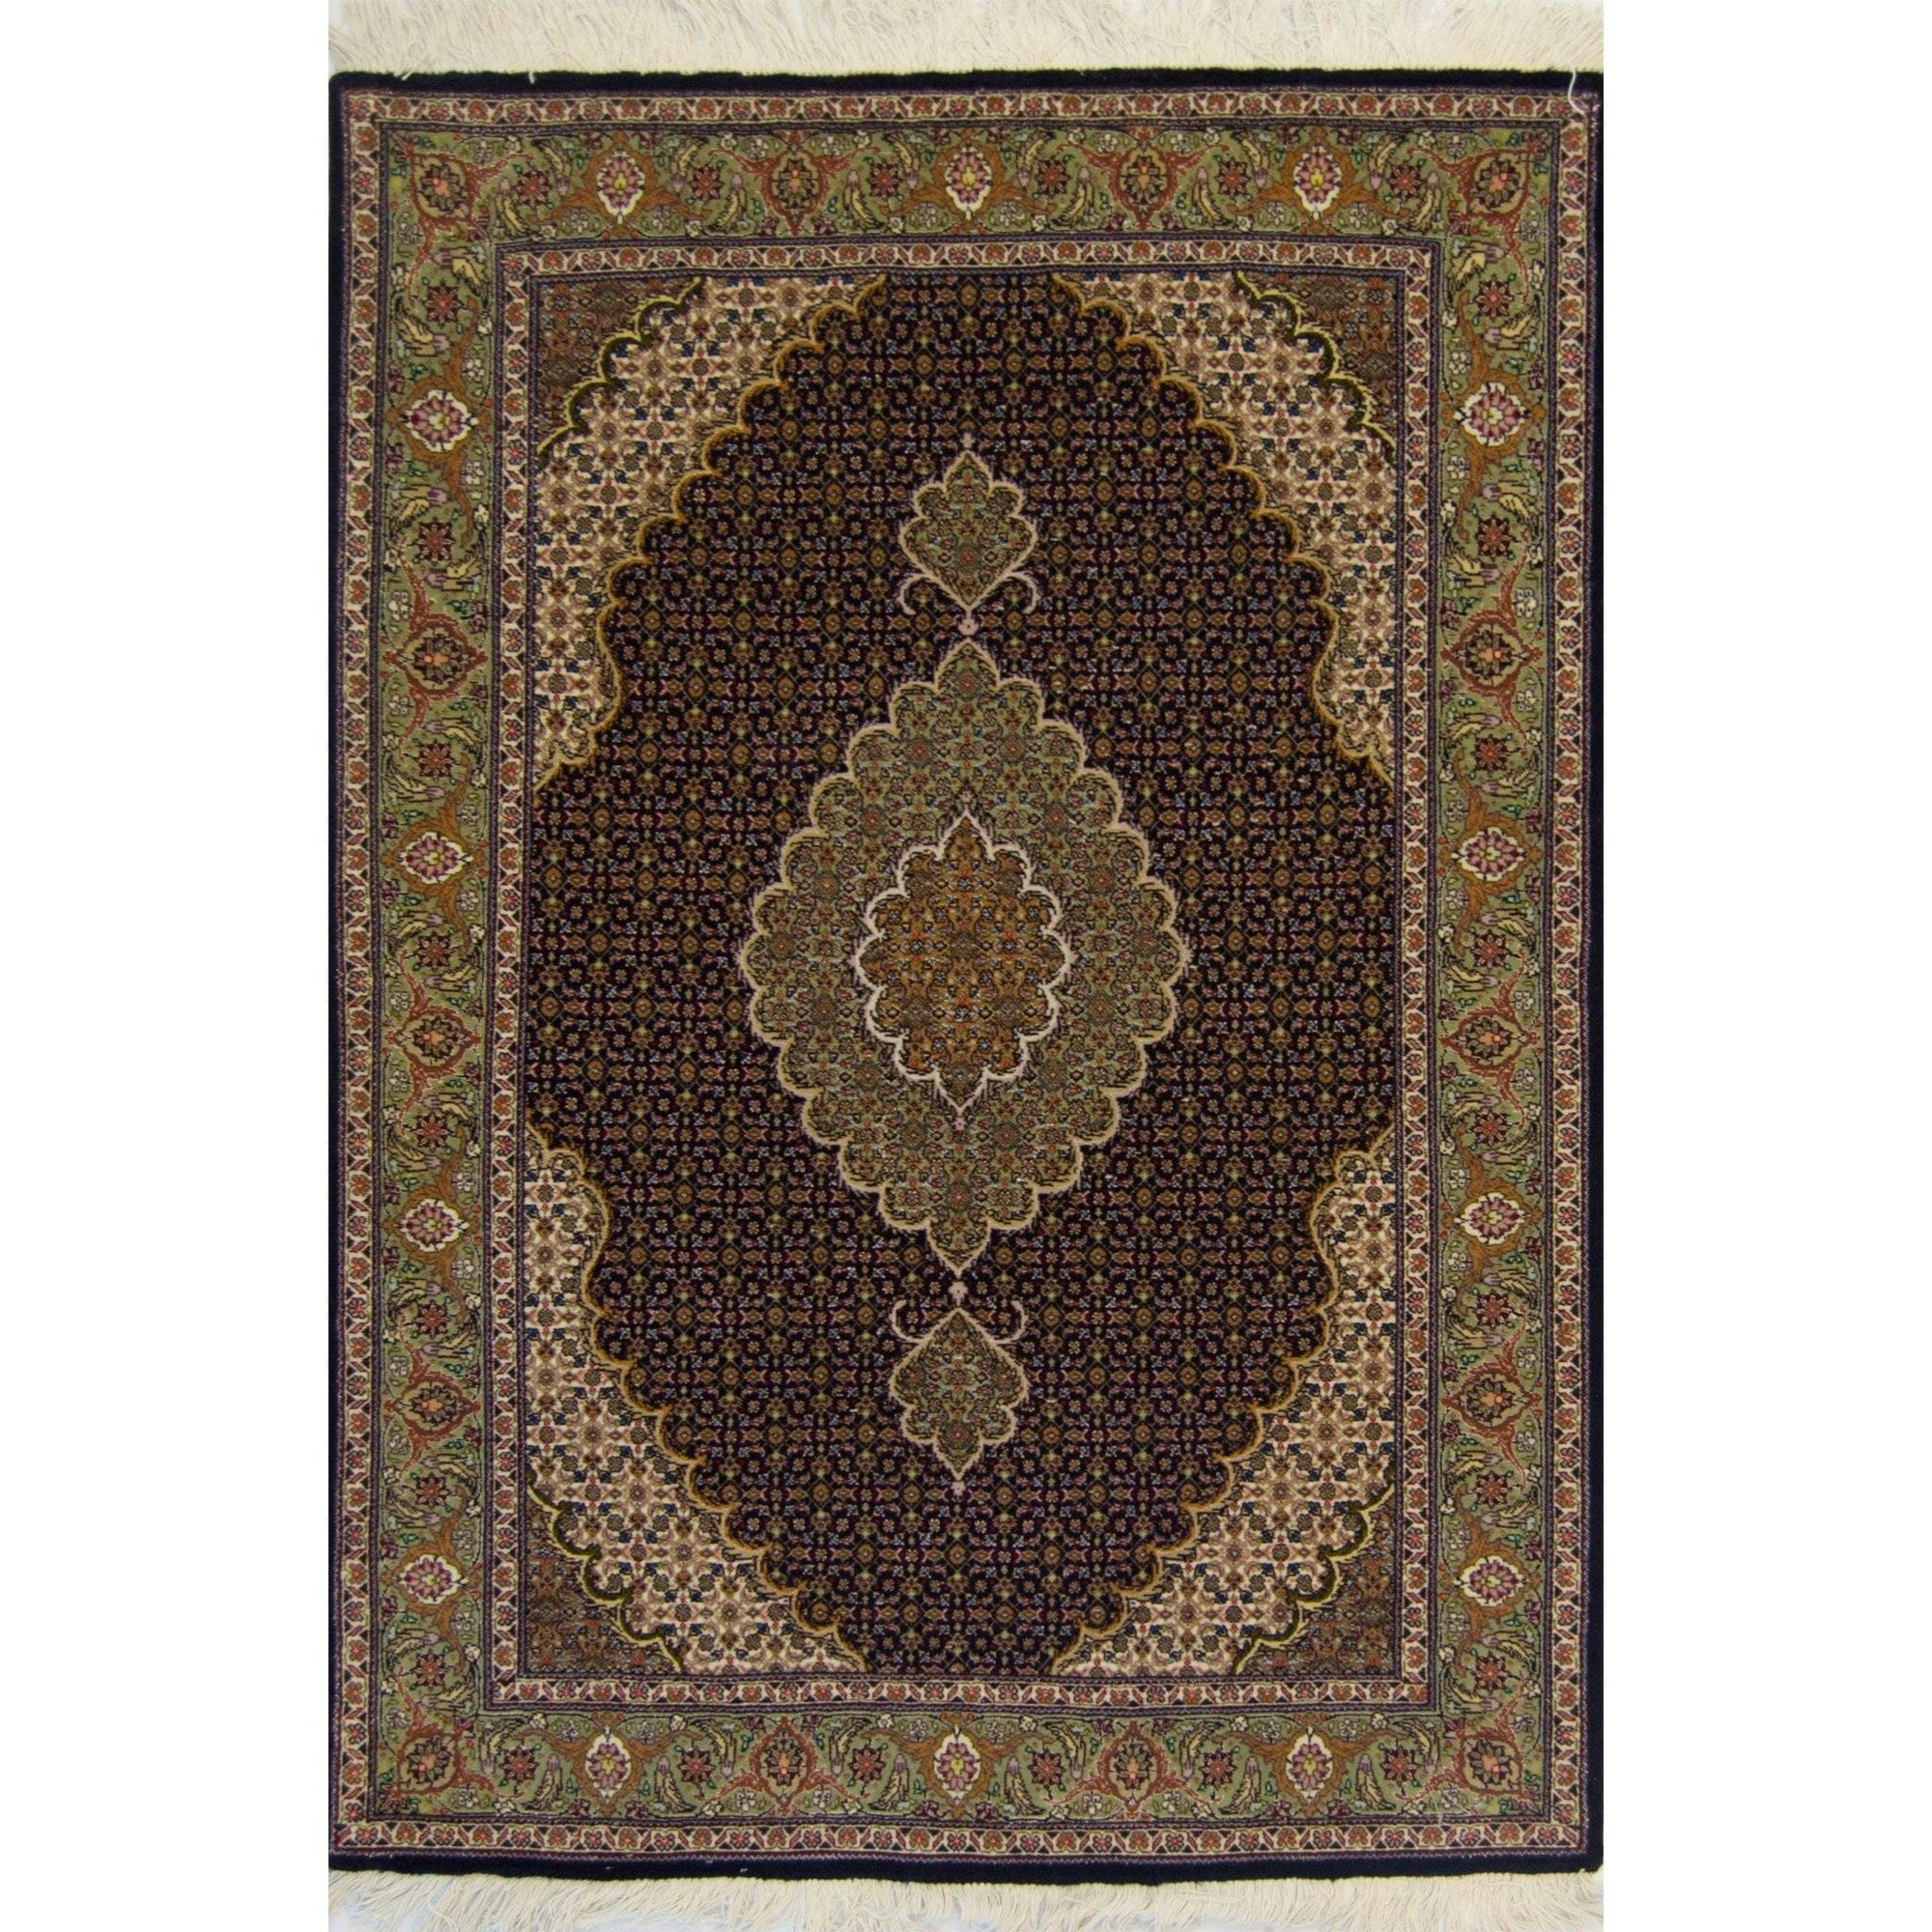 Super Fine Persian Hand-knotted Wool and Silk Tabriz - Mahi Rug 103 cm x 157 cm Persian-Rug | House-of-Haghi | NewMarket | Auckland | NZ | Handmade Persian Rugs | Hand Knotted Persian Rugs